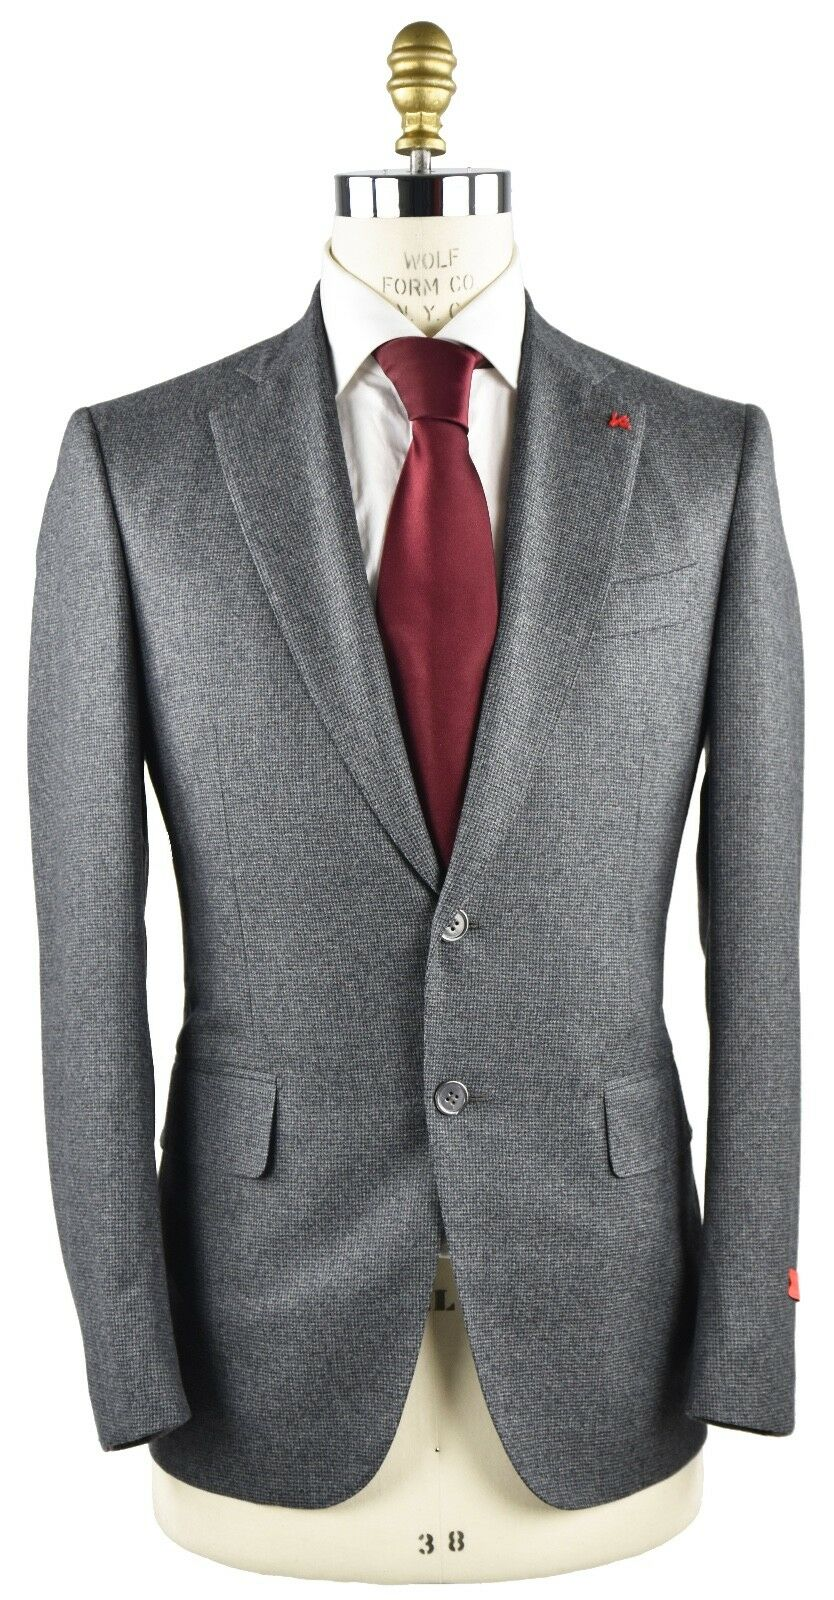 NEW 2018 ISAIA NAPOLI SUITS  100% WOOL 120'S SZ 38 US 48 EU 8R  18IVW1